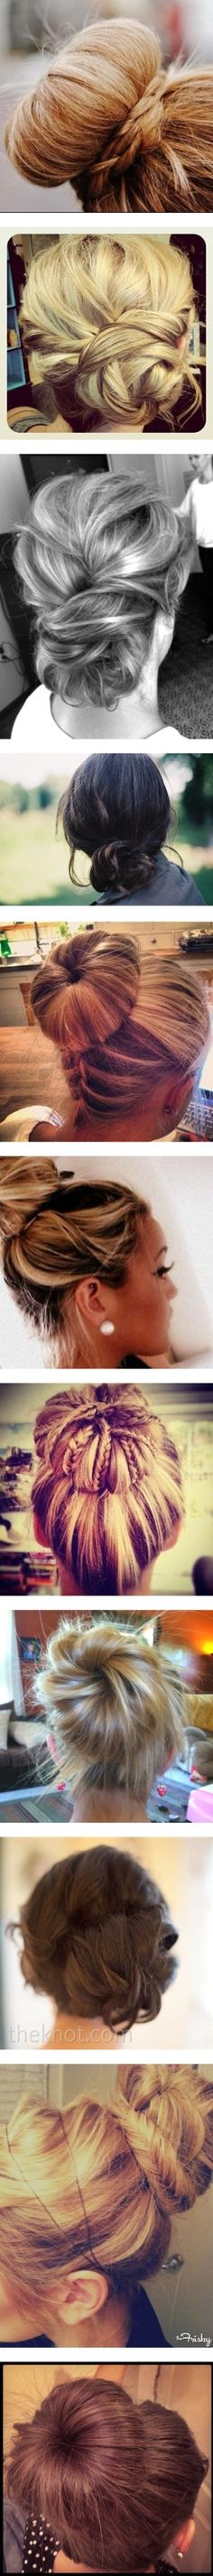 LOVE! who knew buns could be so fashionable